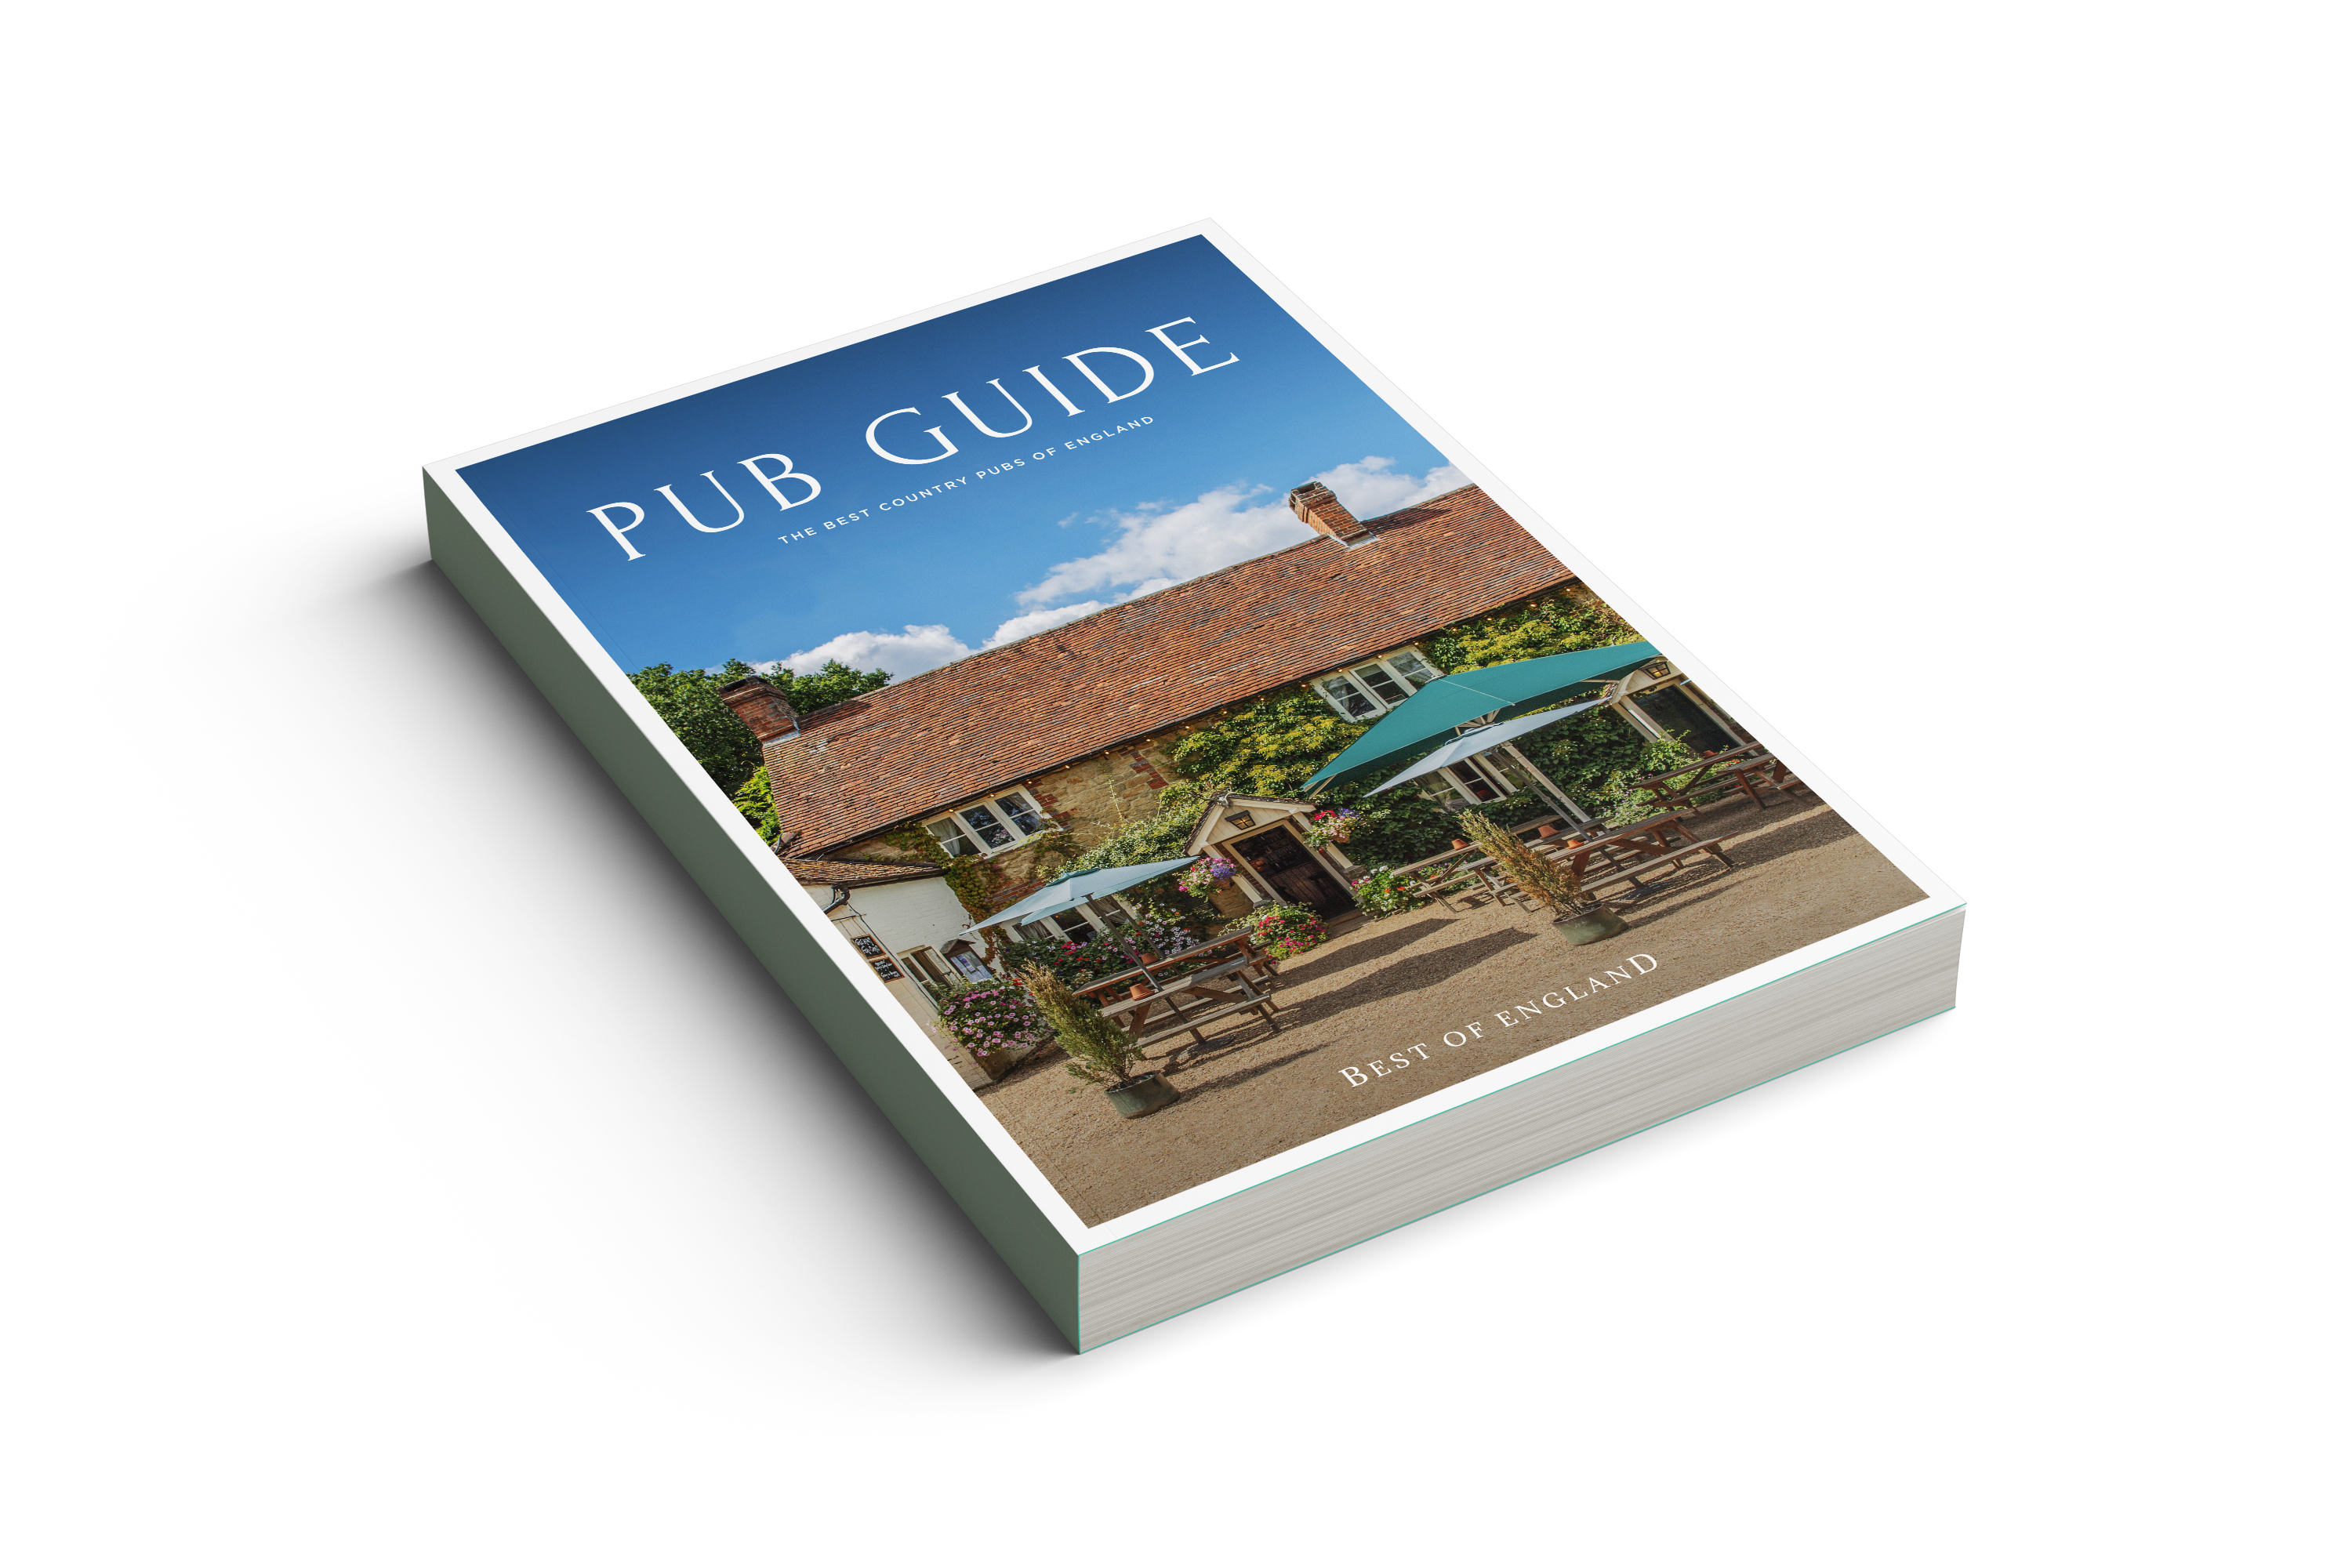 Best of England Pub Guide